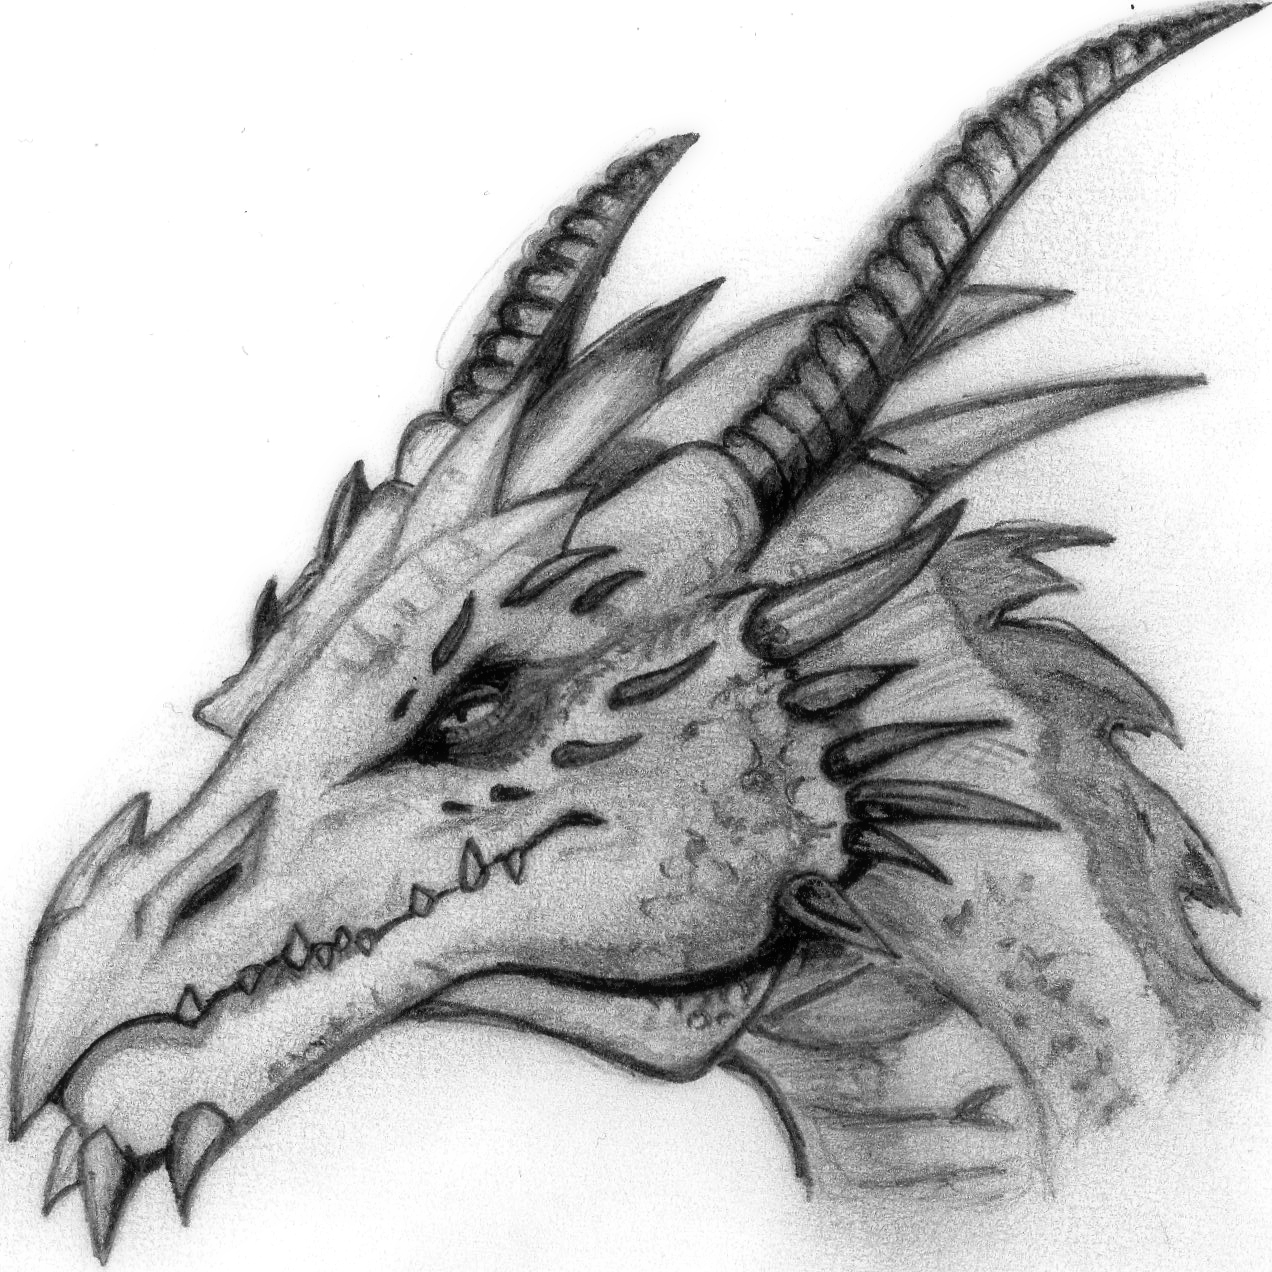 Dragon head by deathlouis on DeviantArt